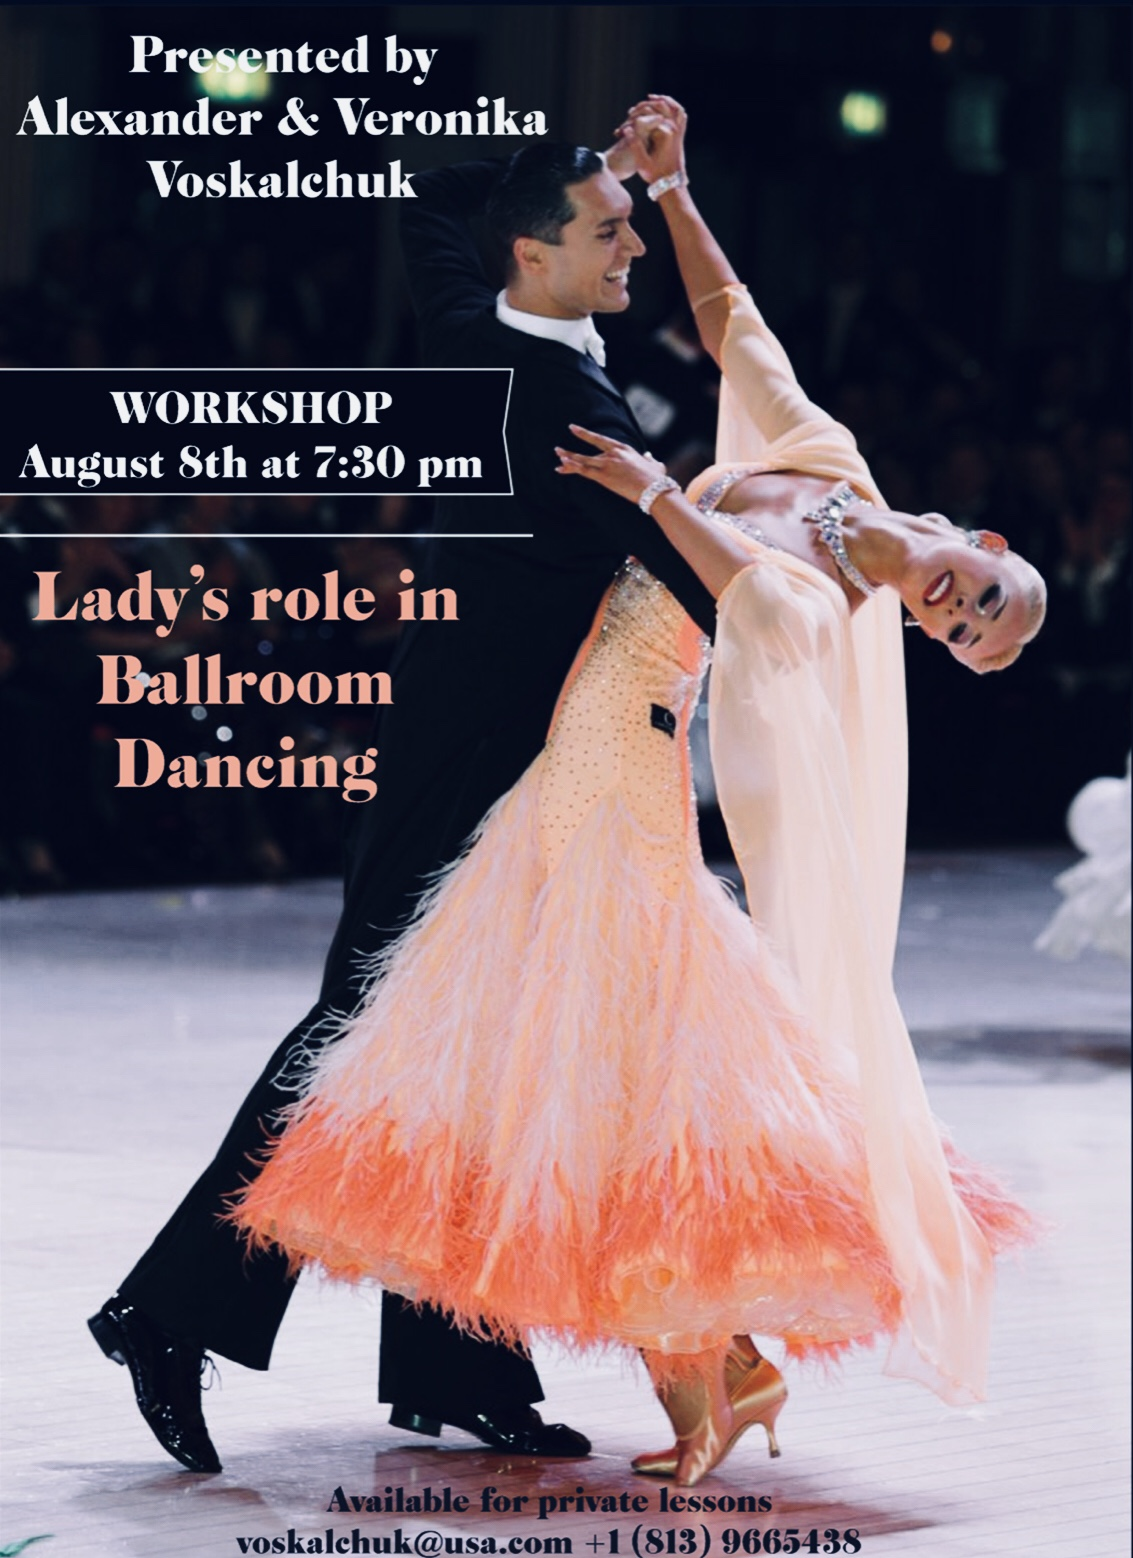 Alexander & Veronika Voskalchuk - Workshop - Lady's Role in Ballroom Dancing - Wednesday, August 8 - 7:30 PM